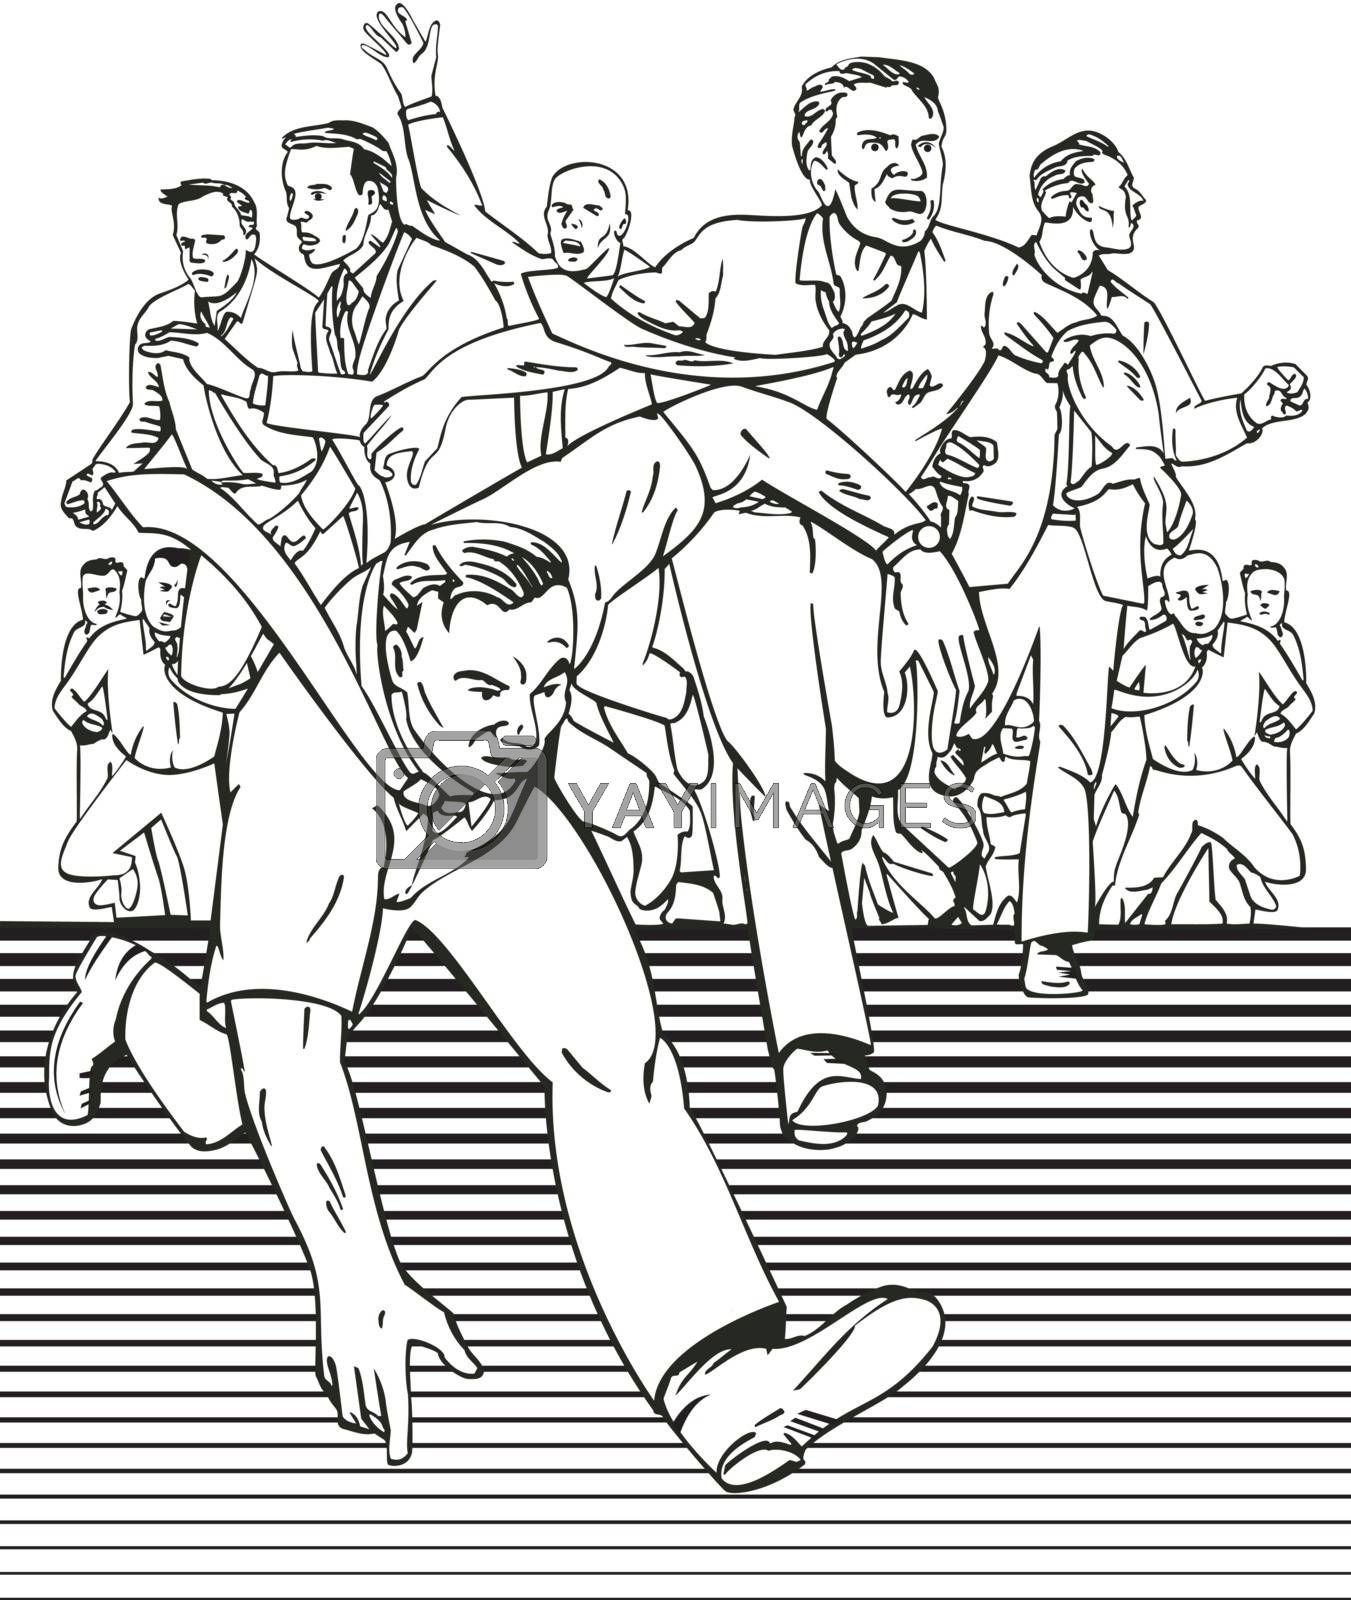 Illustration of people businessman mob running done in black and white set in white background done in retro style.